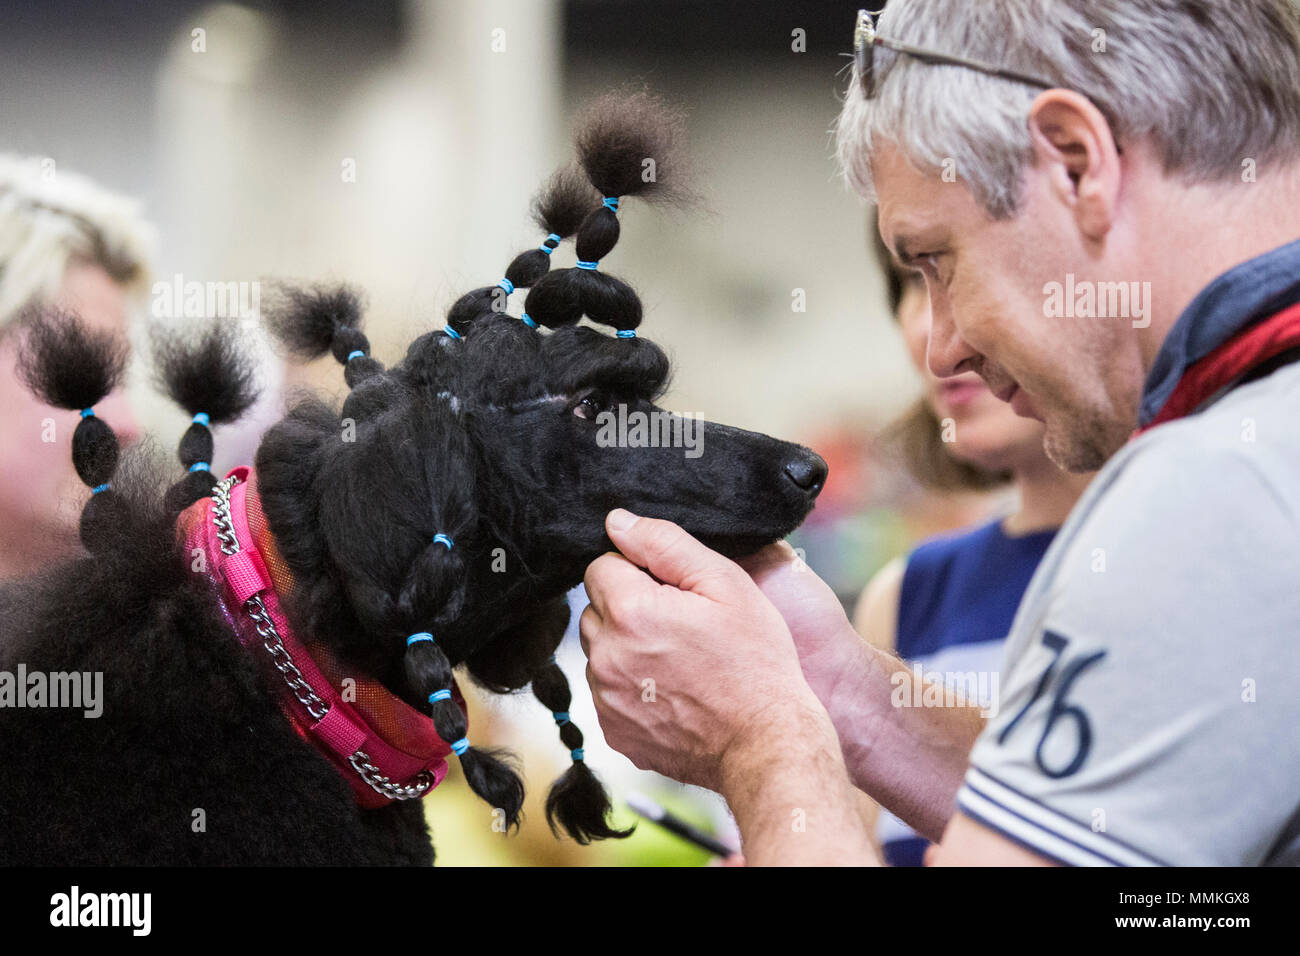 Dortmund, Germany. 12 May 2018. Standard Poodles before a competition. One of the largest dog and cat shows Hund & Katz takes place with more than 8000 dogs from 250 different breeds from 11 to 13 May at Westfalenhallen trade fair in Dortmund. Credit: 51North/Alamy Live News - Stock Image